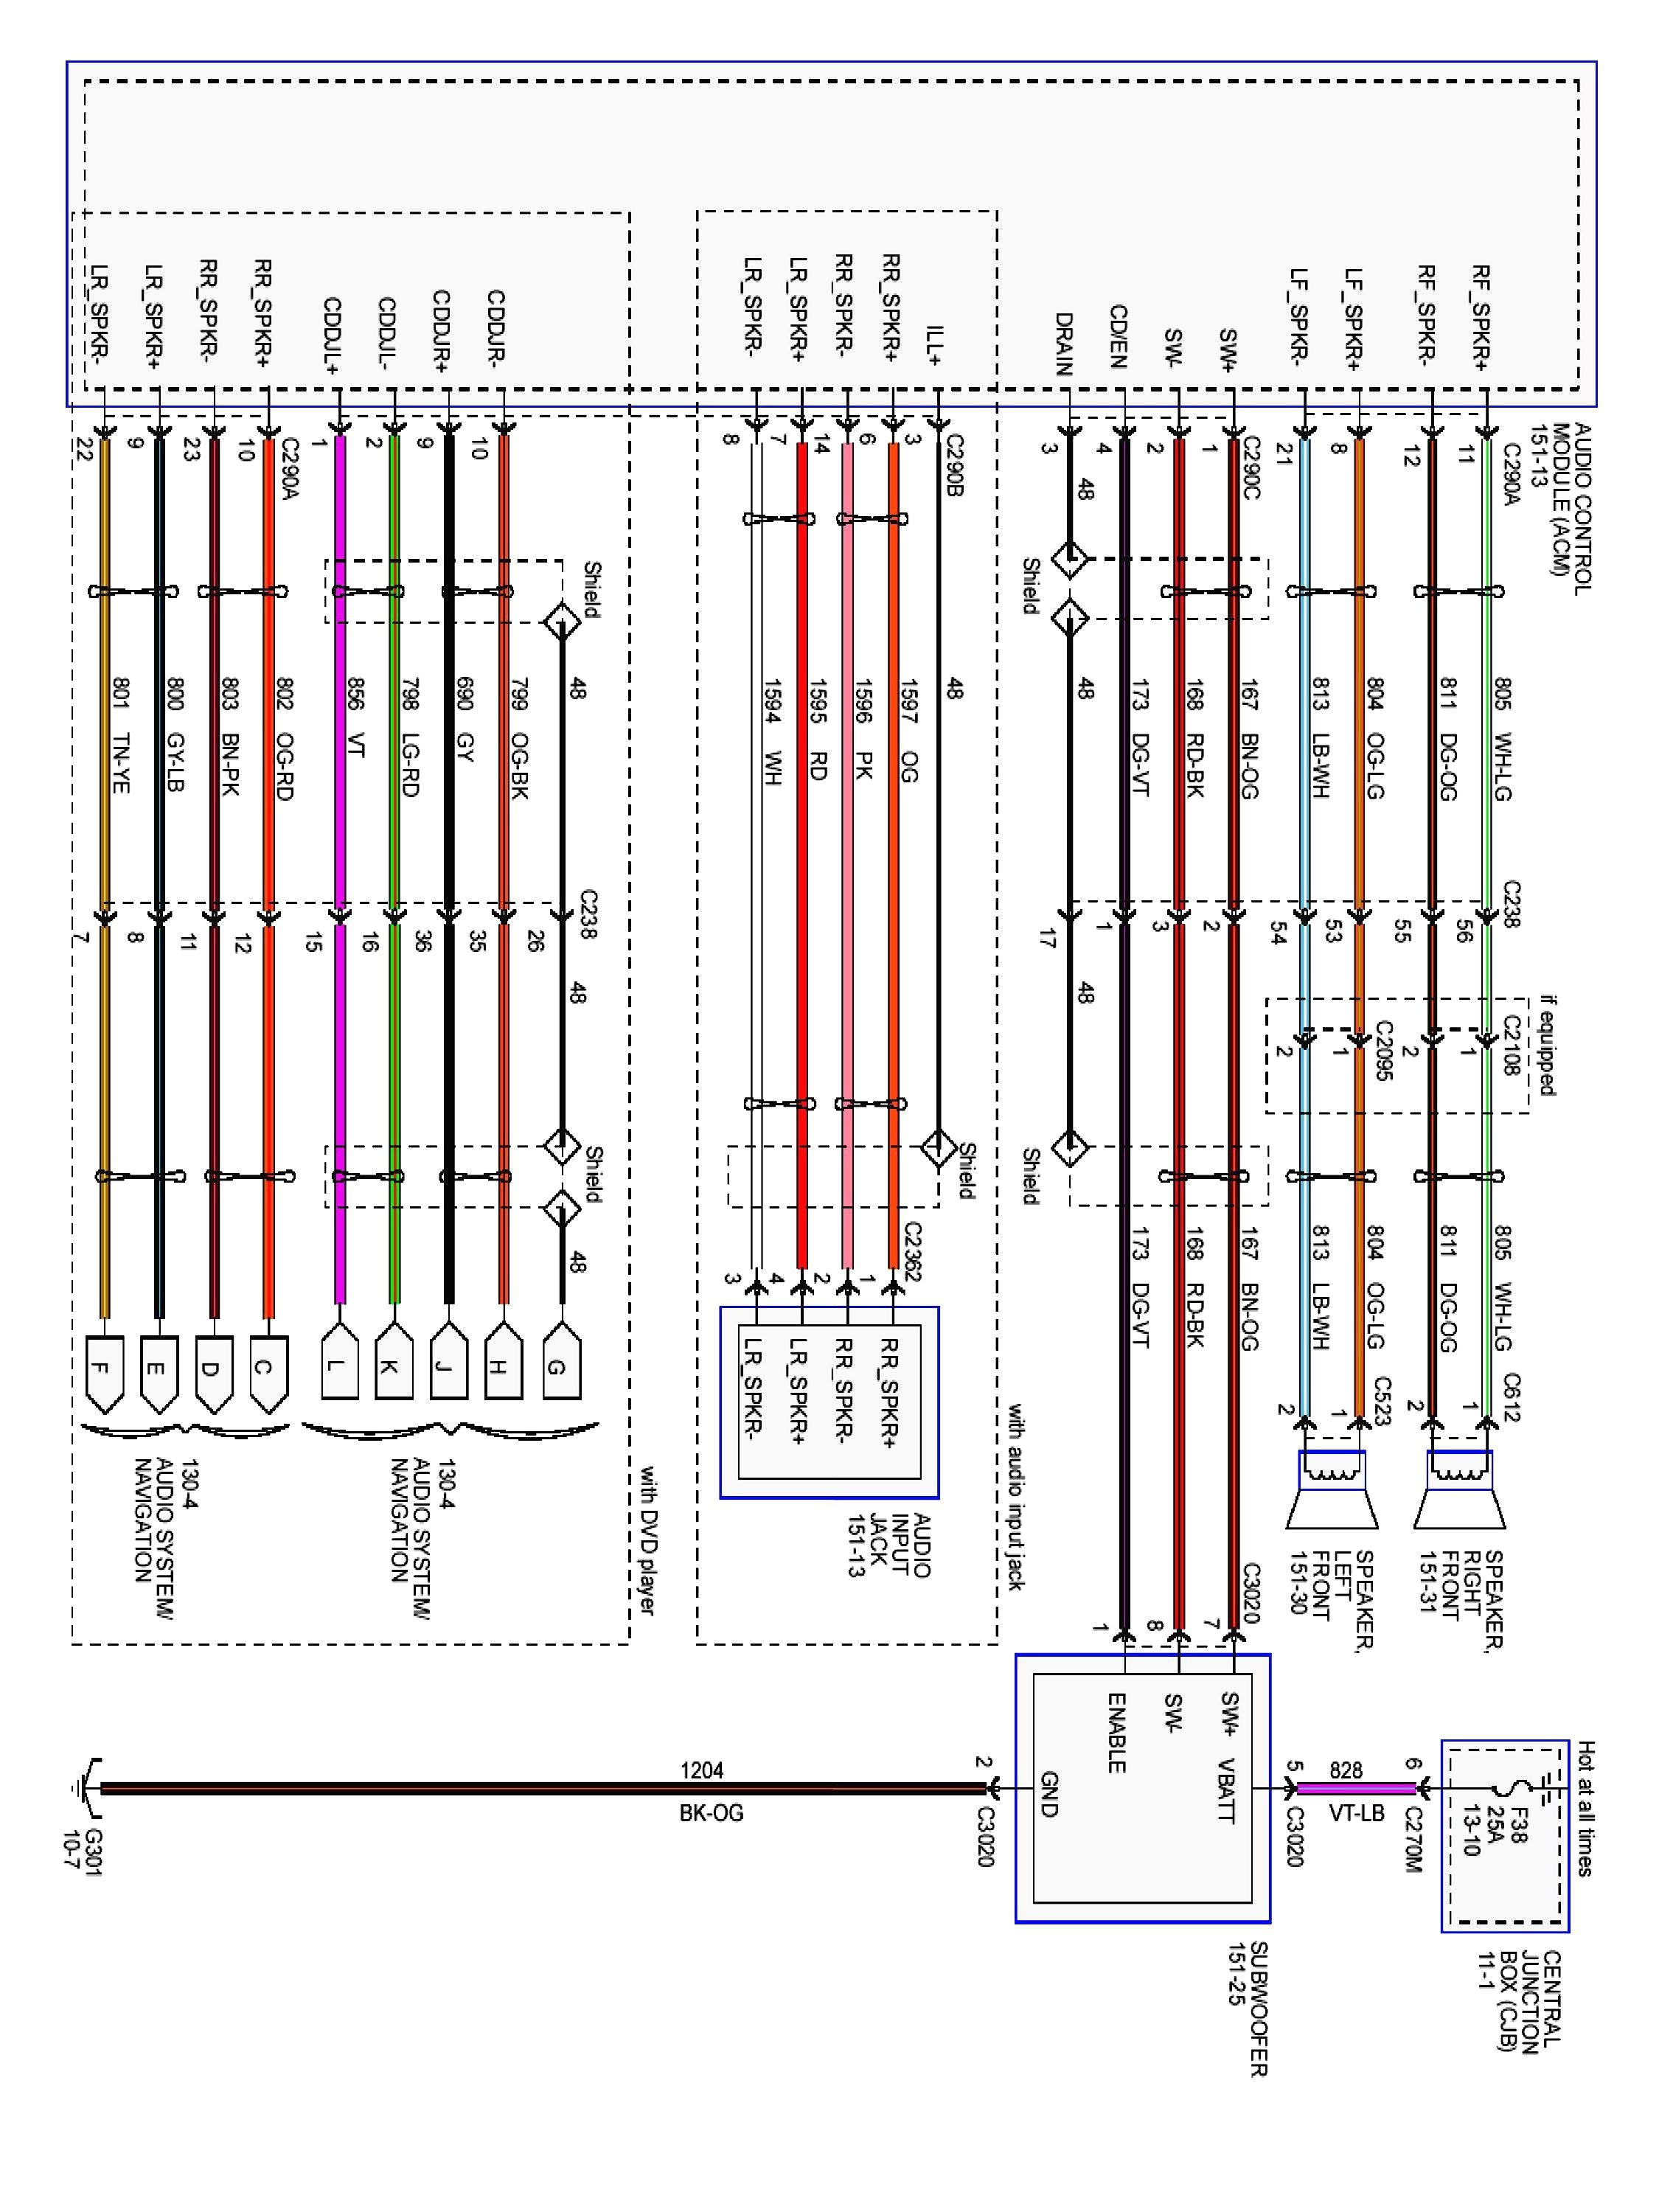 2005 Ford Explorer Radio Wiring Diagram | Wiring Diagram